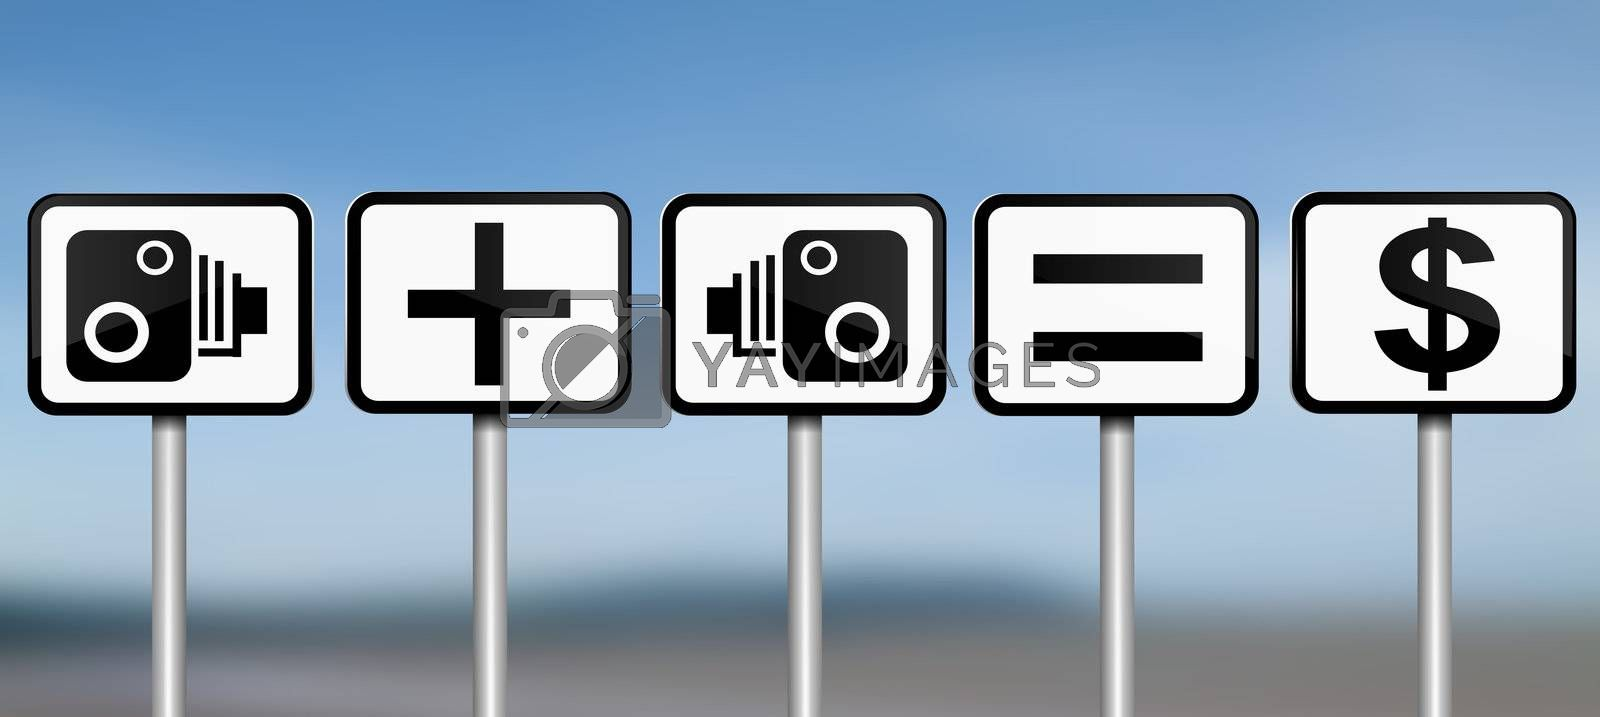 Illustration depicting road signs with speed camera financial gain concept. Blue blur background.